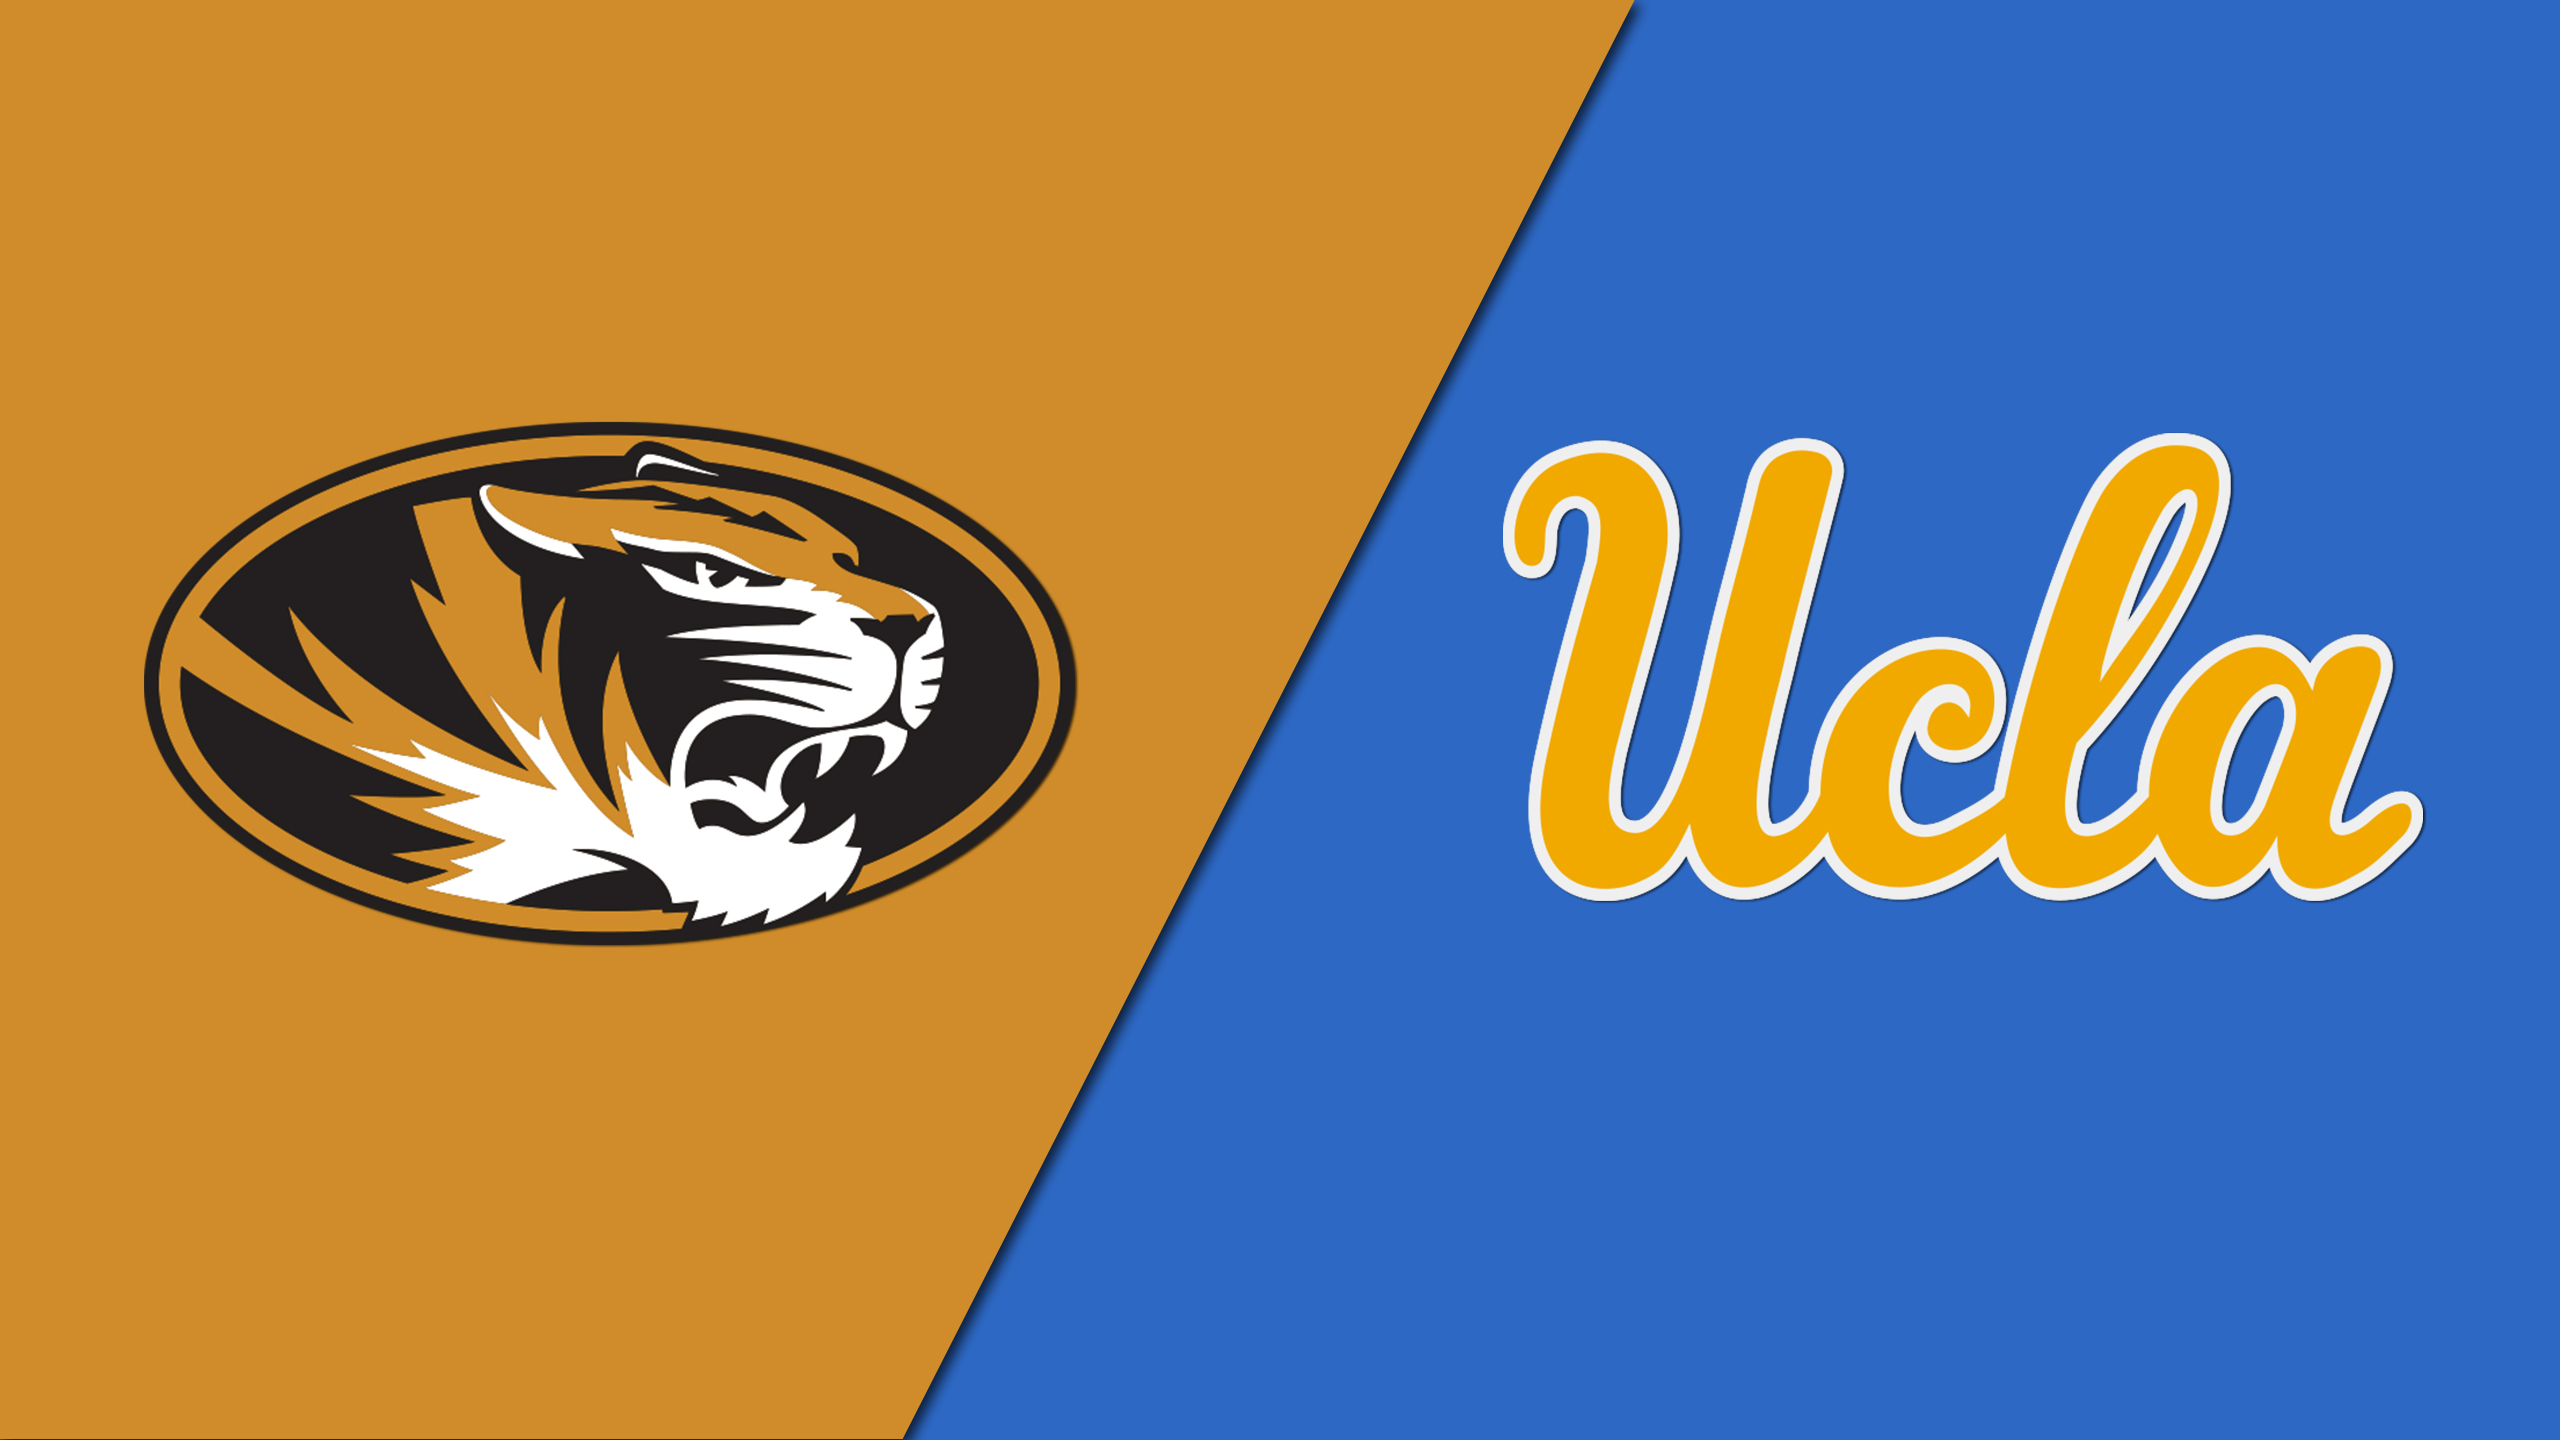 Missouri vs. UCLA (Site 8 / Game 7)